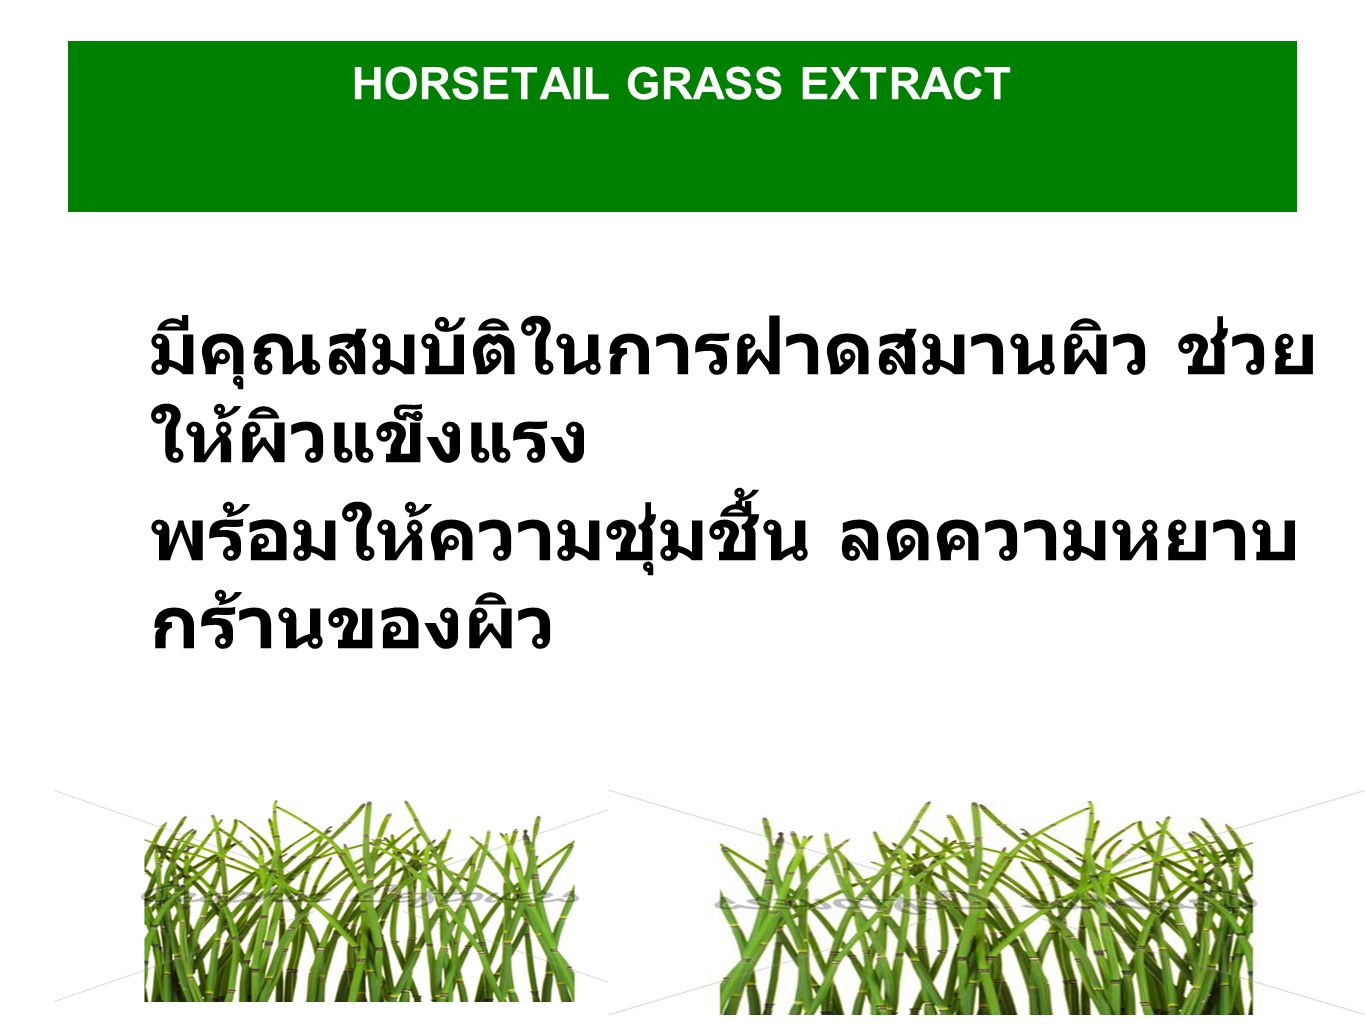 HORSETAIL GRASS EXTRACT